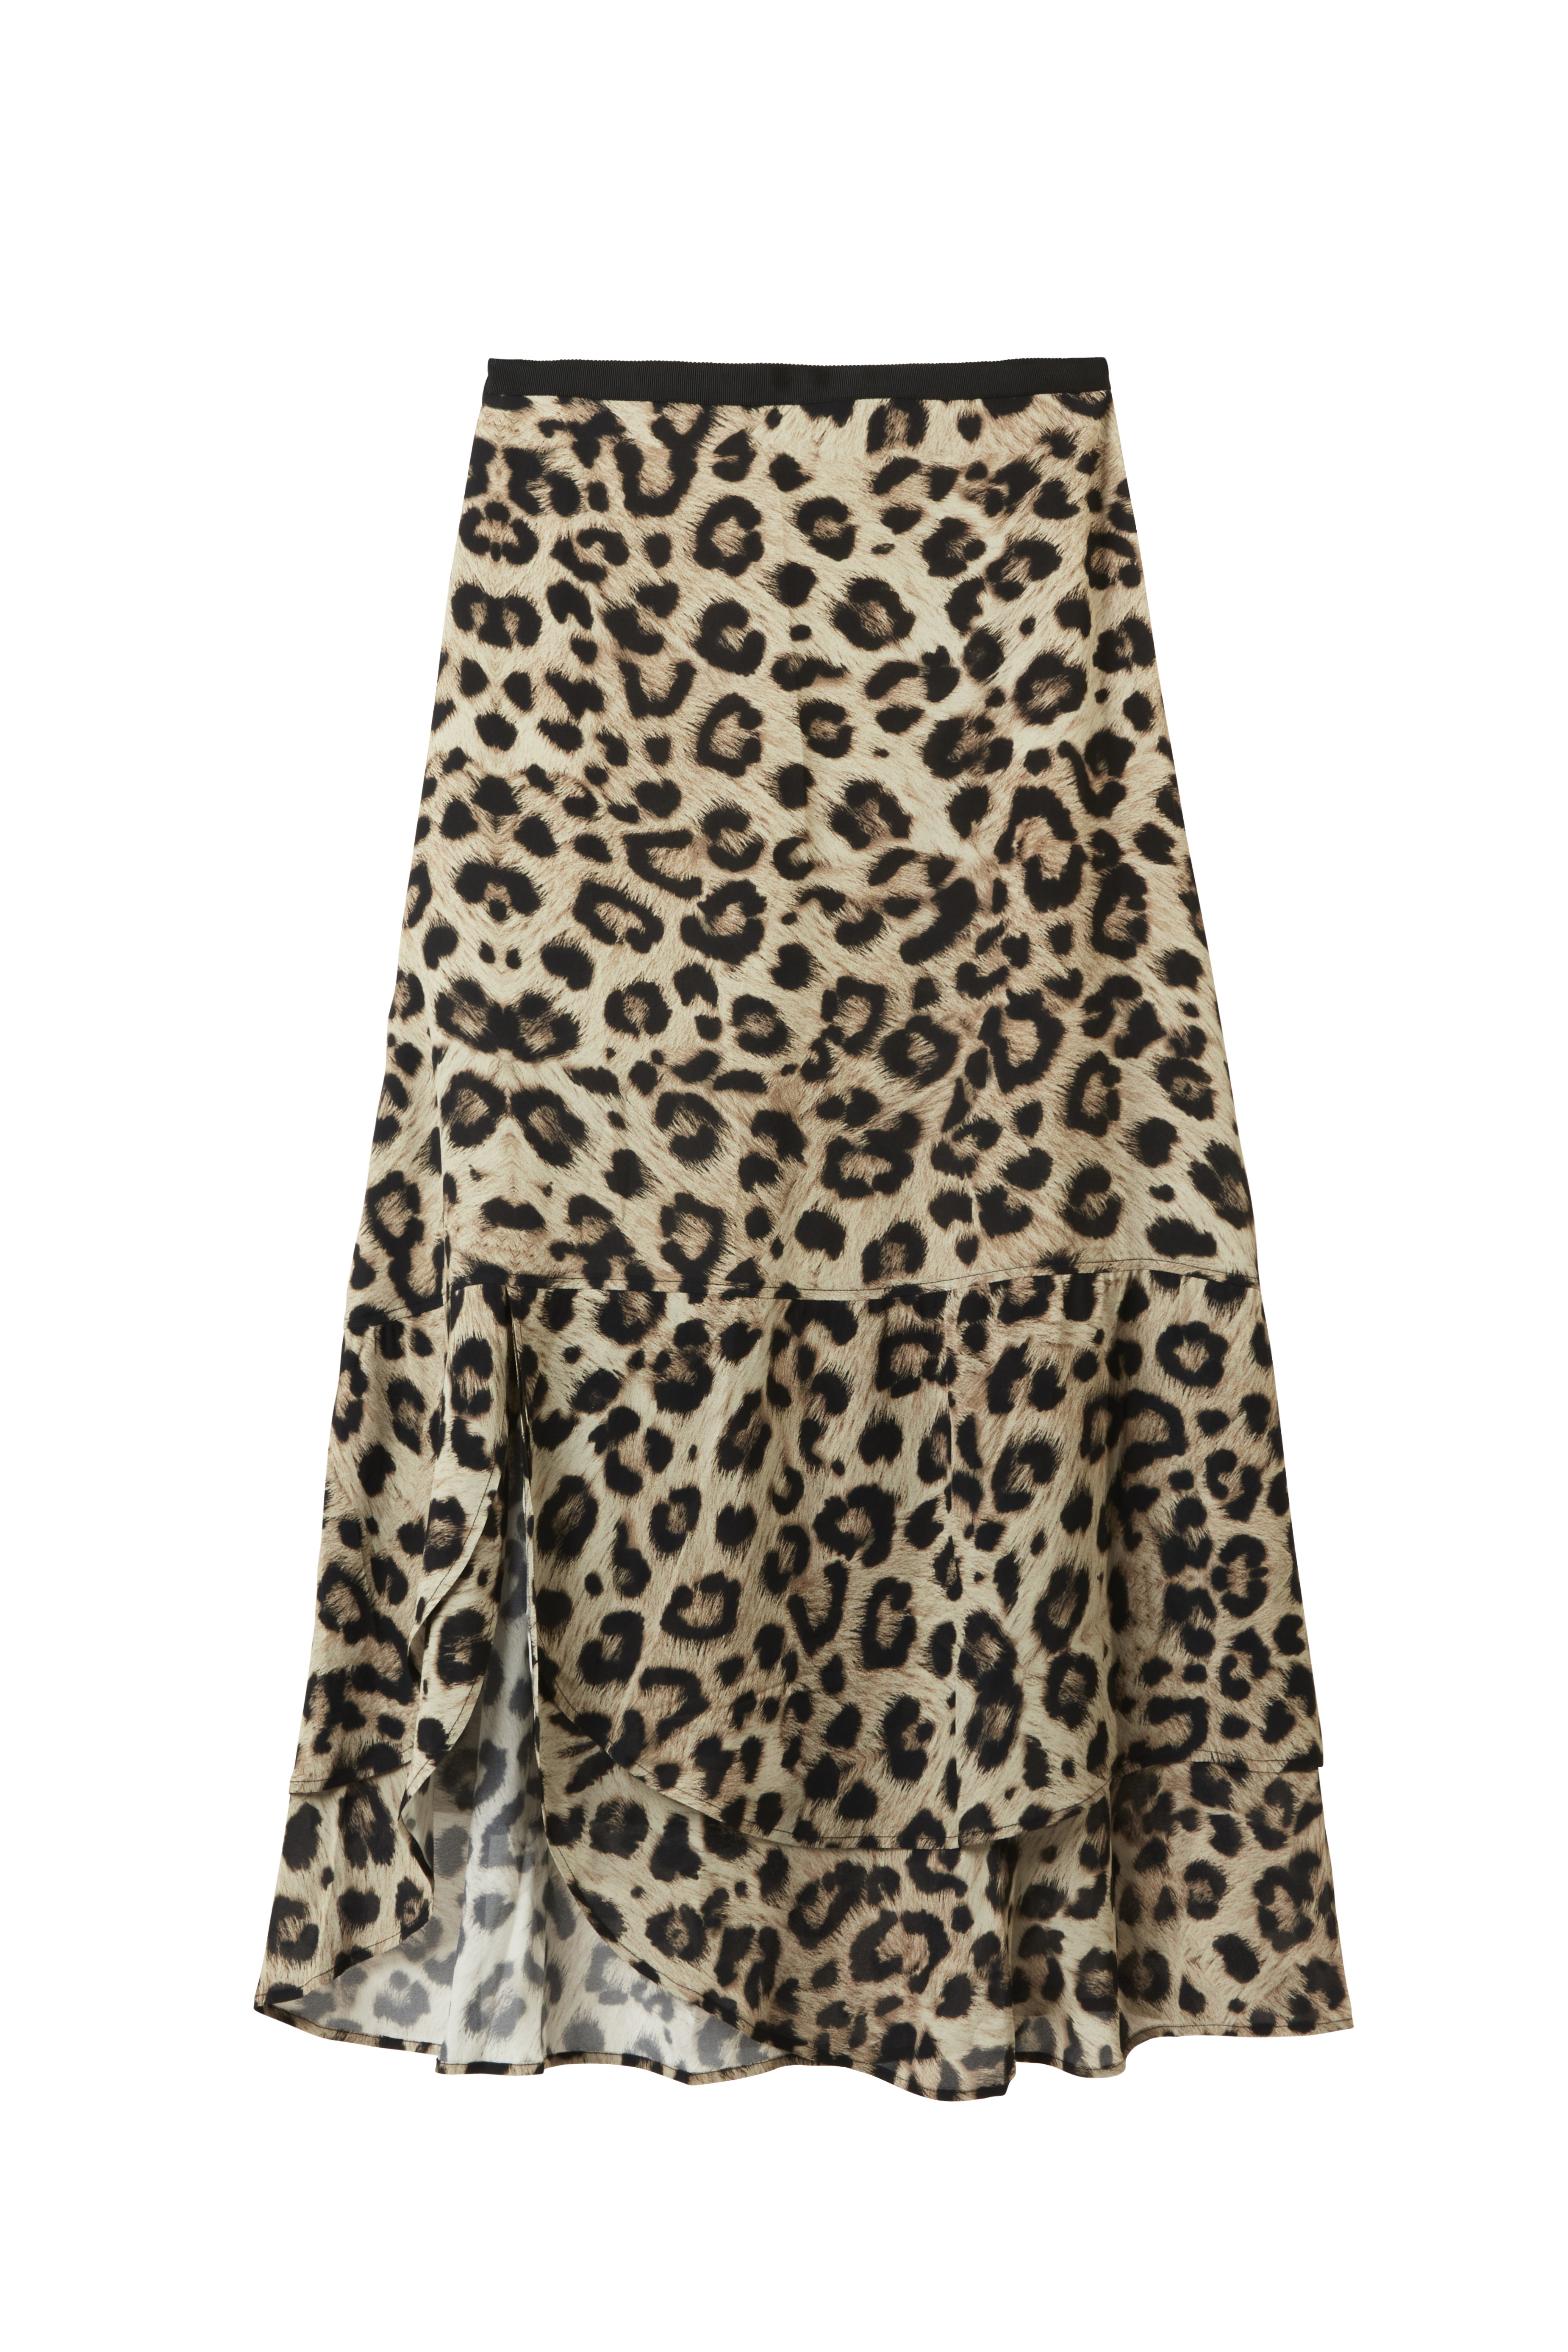 Pyrus Keira Skirt in Leopard Print